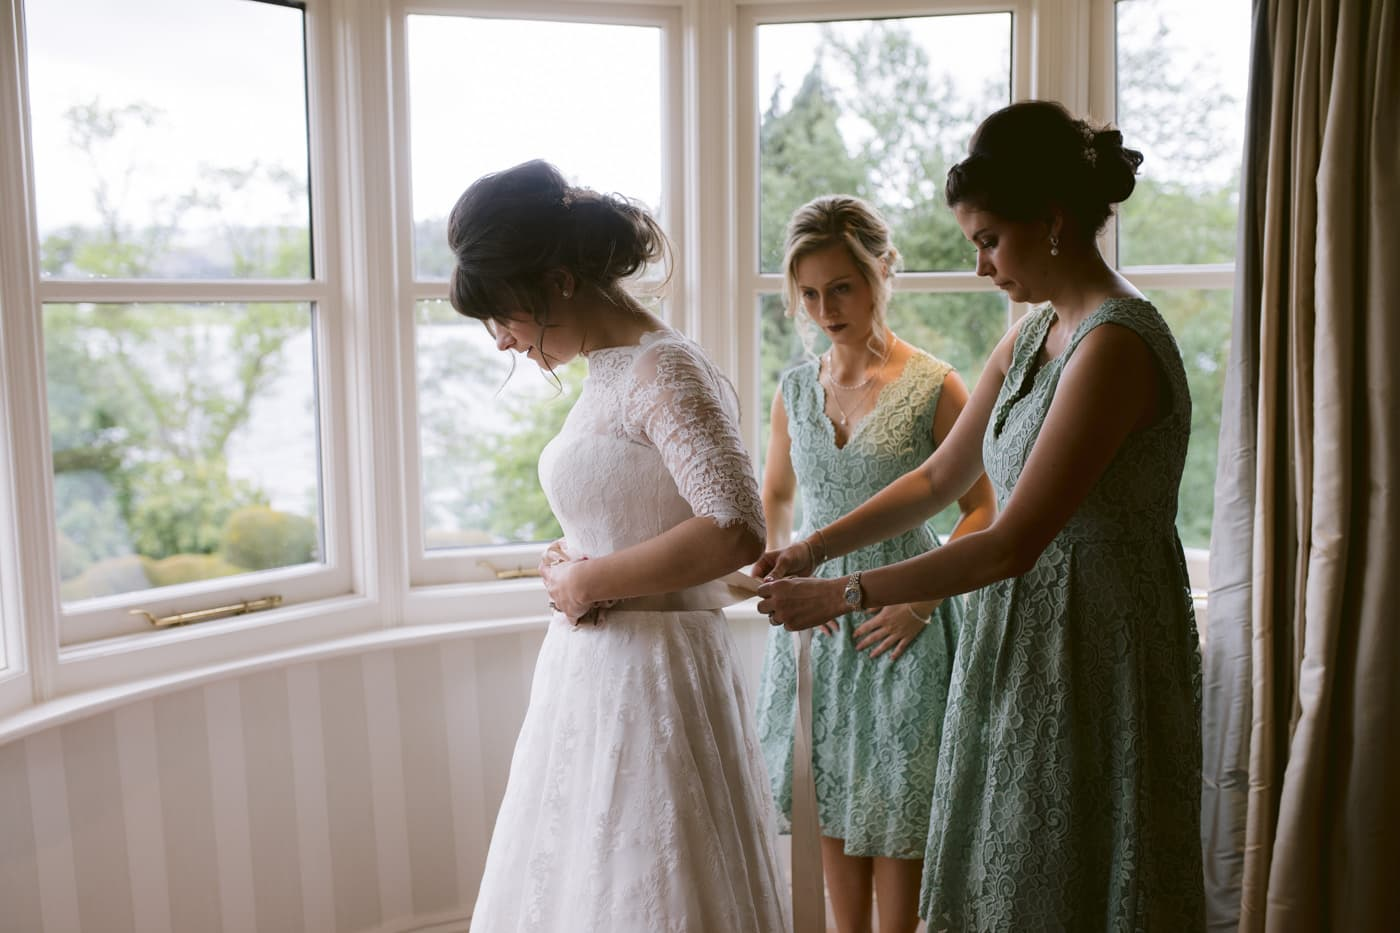 Wedding Dress with Bridesmaids Portrait